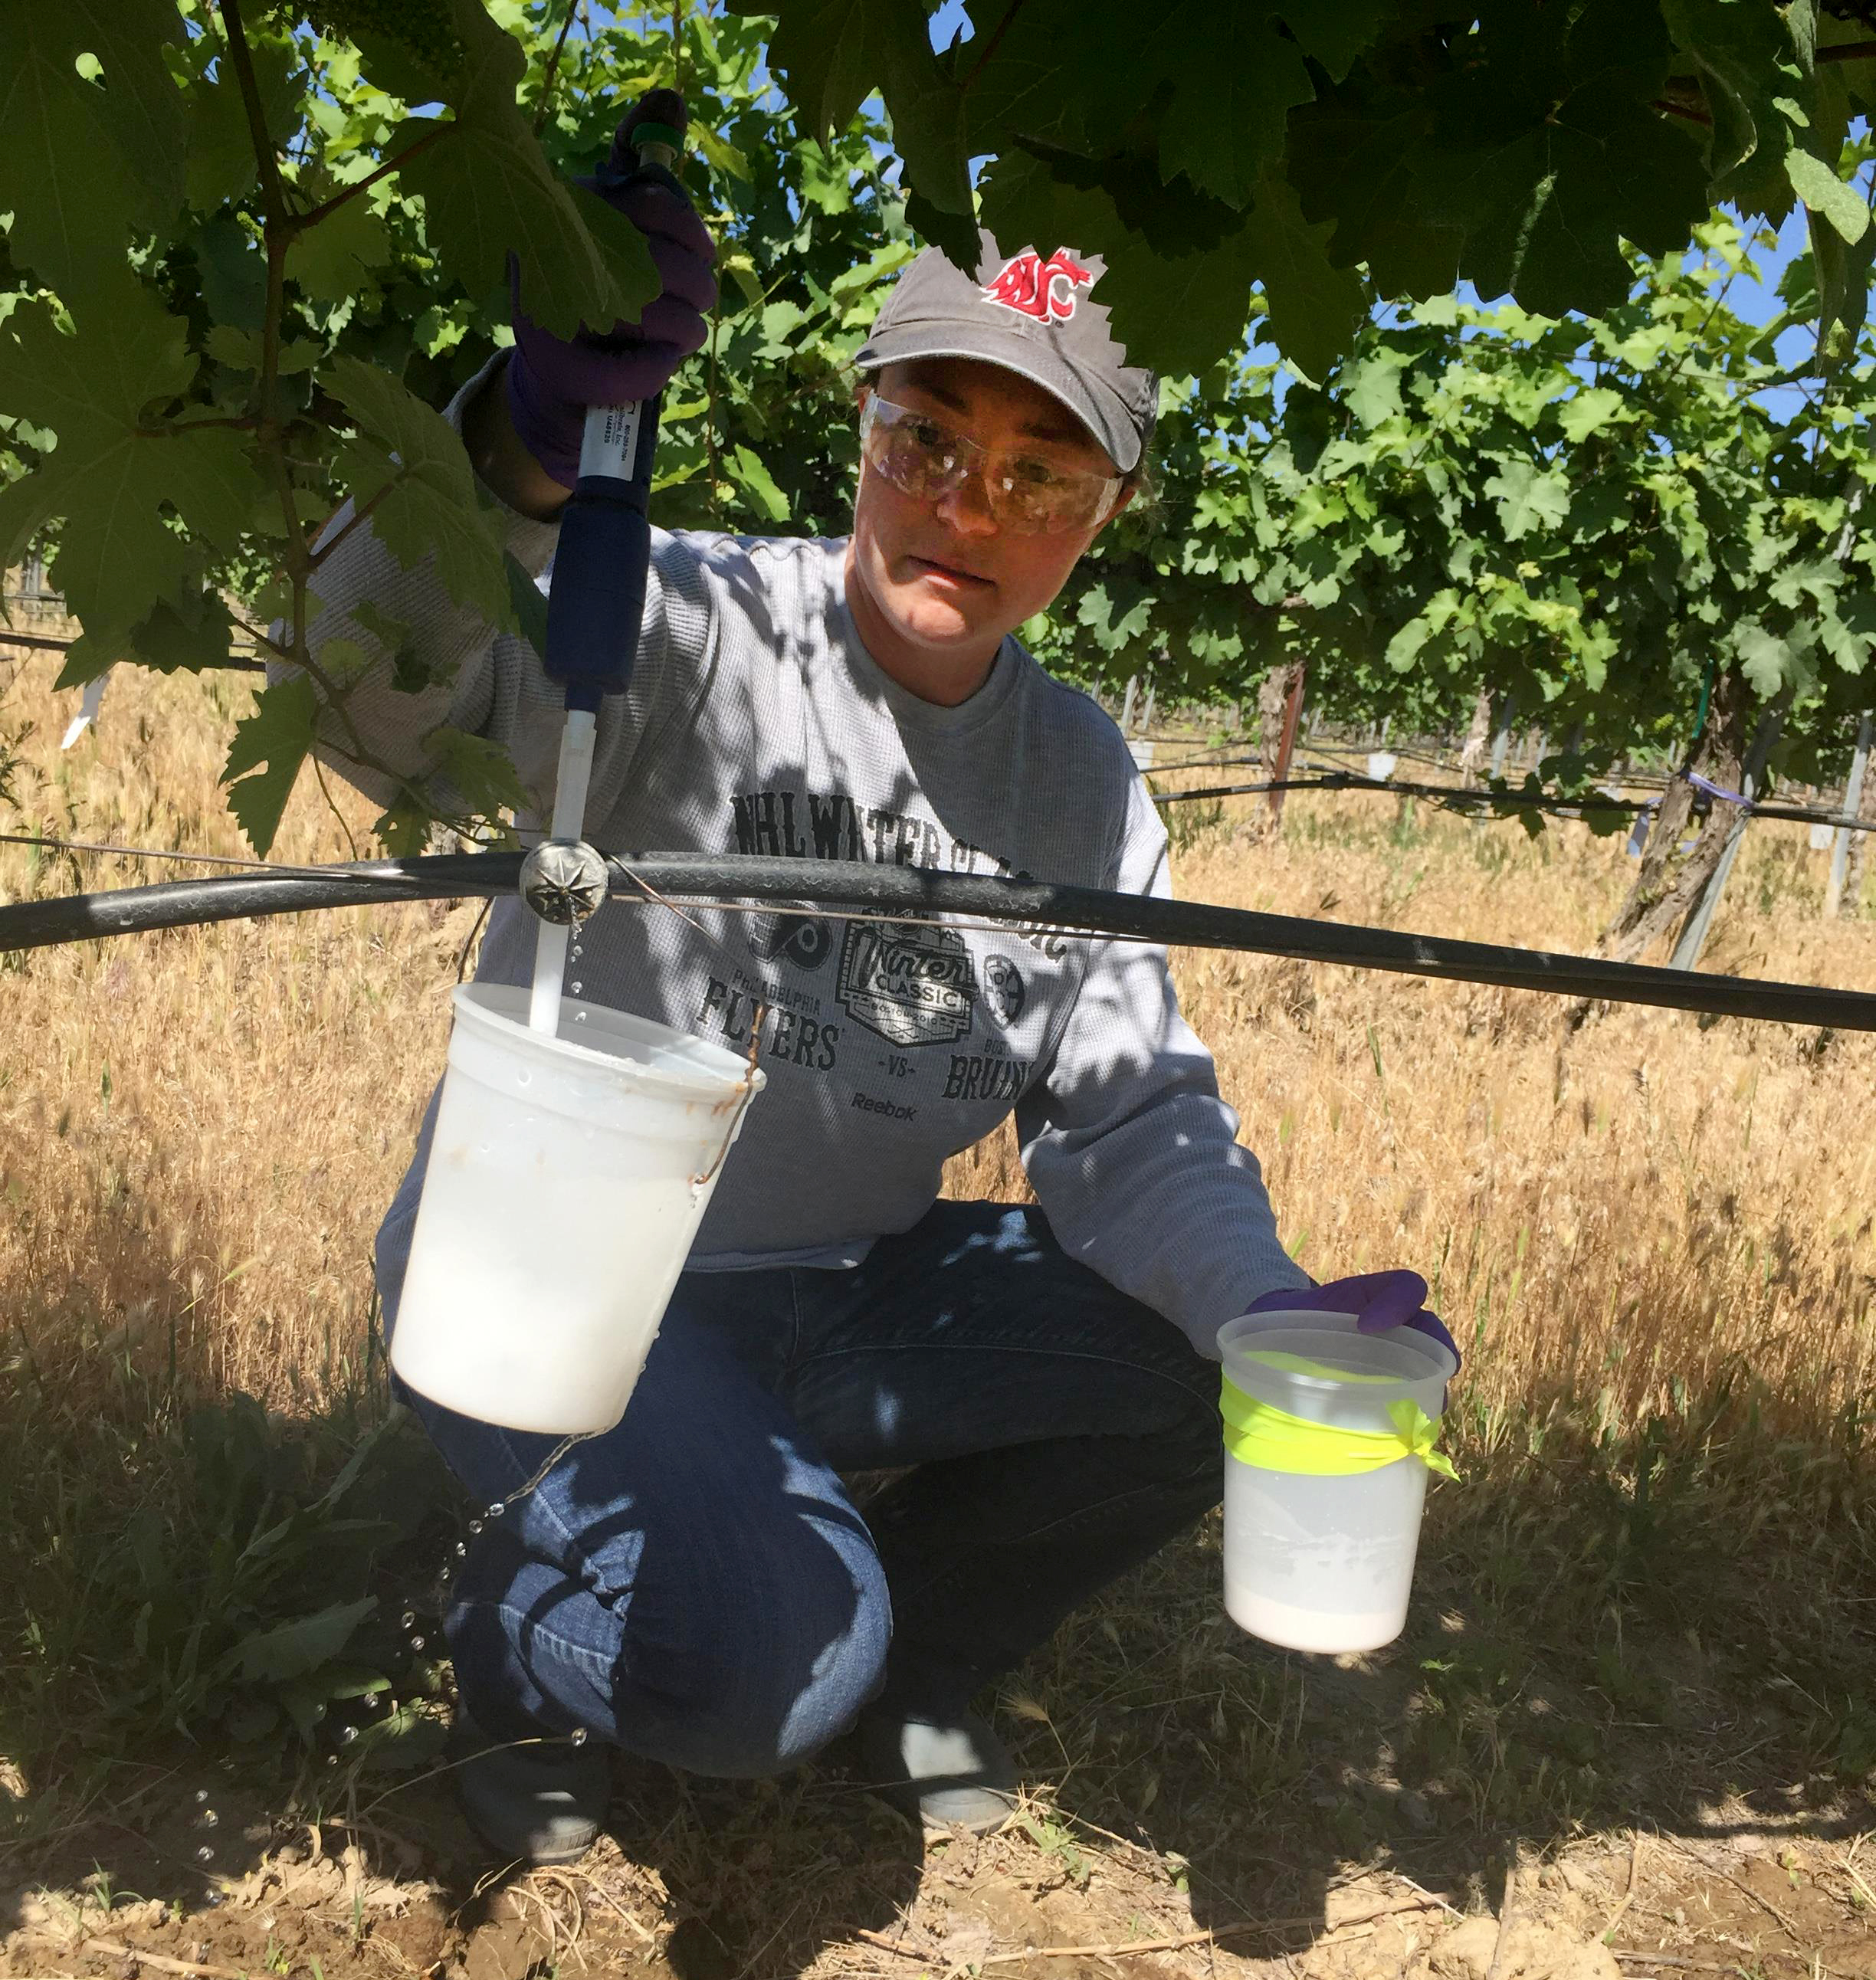 Katherine East applying nematicides in a vineyard trial